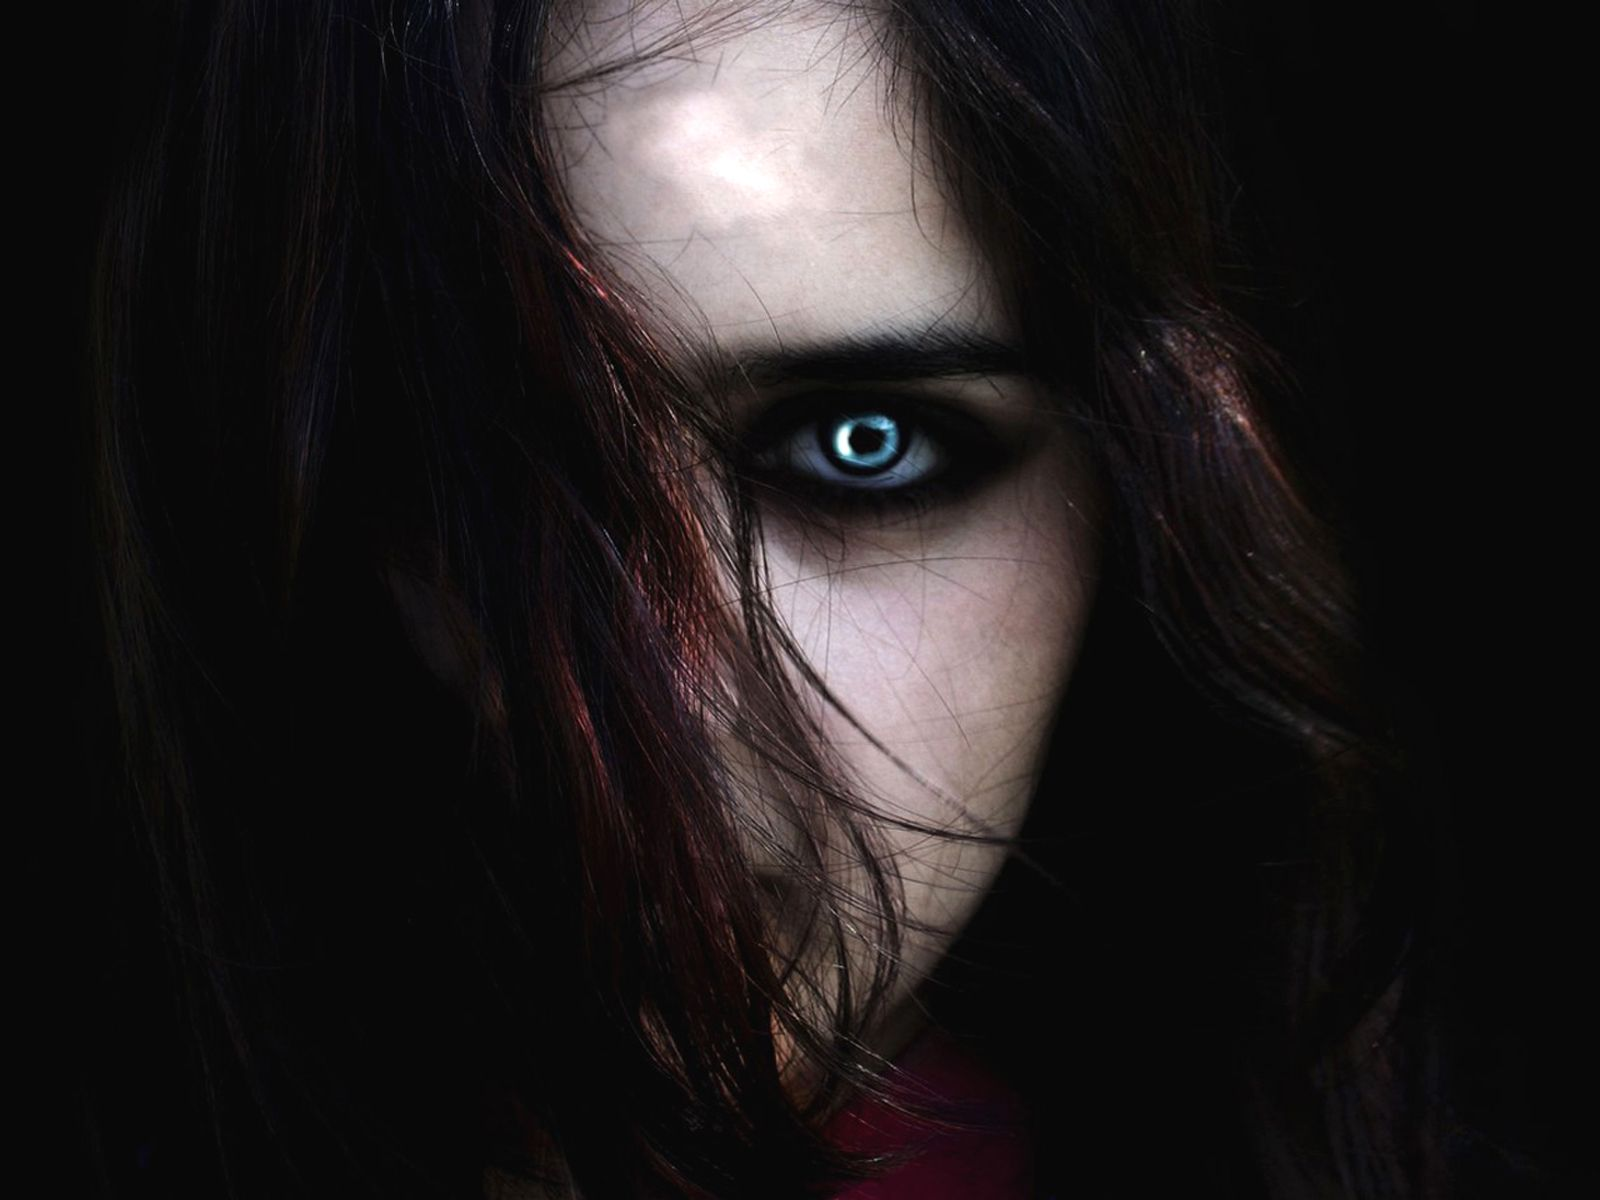 Vampire Eyes Computer Wallpapers Desktop Backgrounds 1600x1200 Id 115516 Vampire Eyes Vampire Pictures Dark Triad